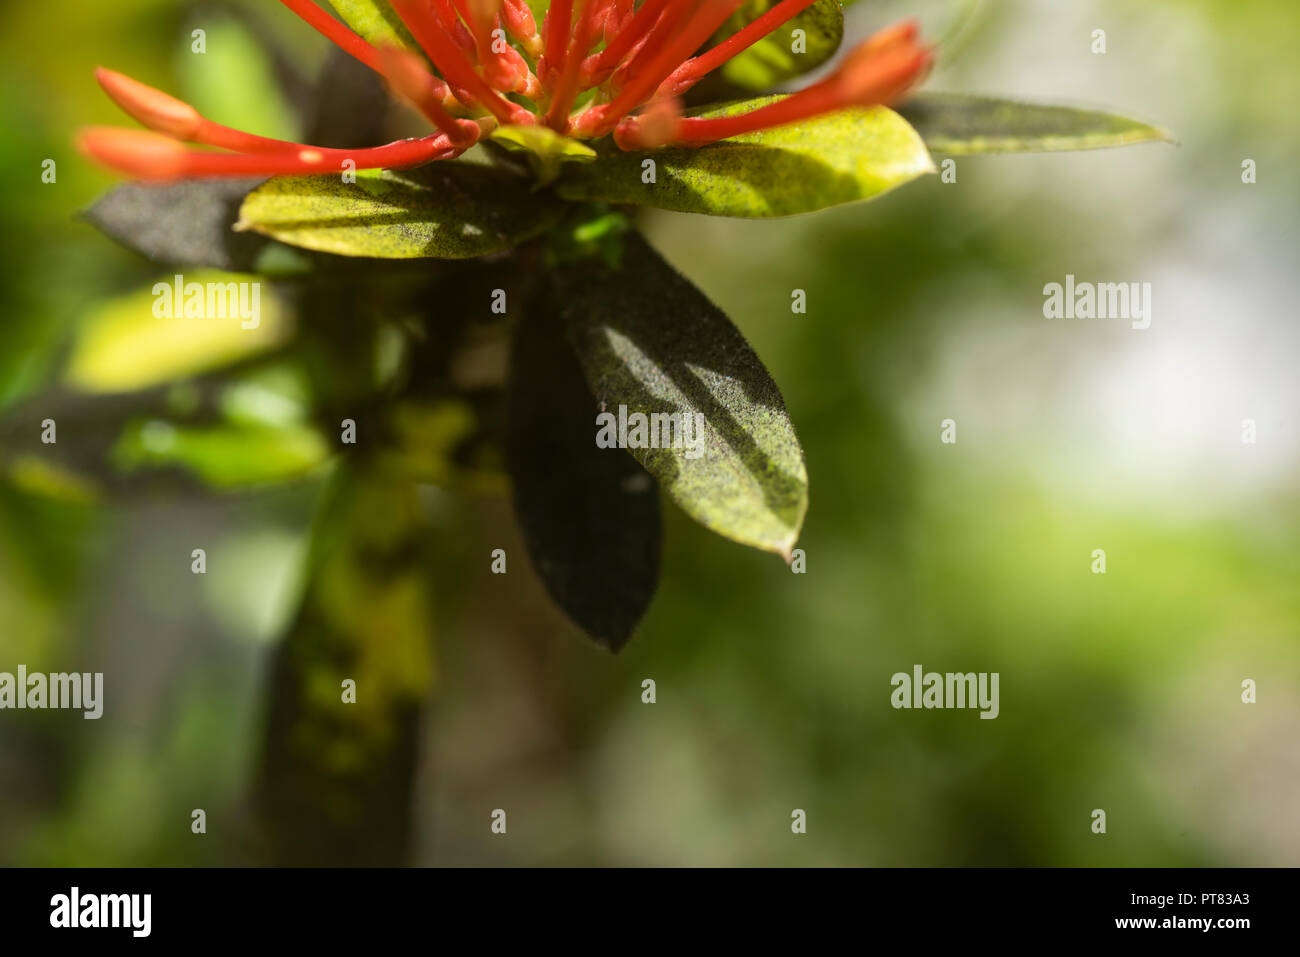 Black sooty mould on the leaves of an Ixora chinensis leaf - Stock Image